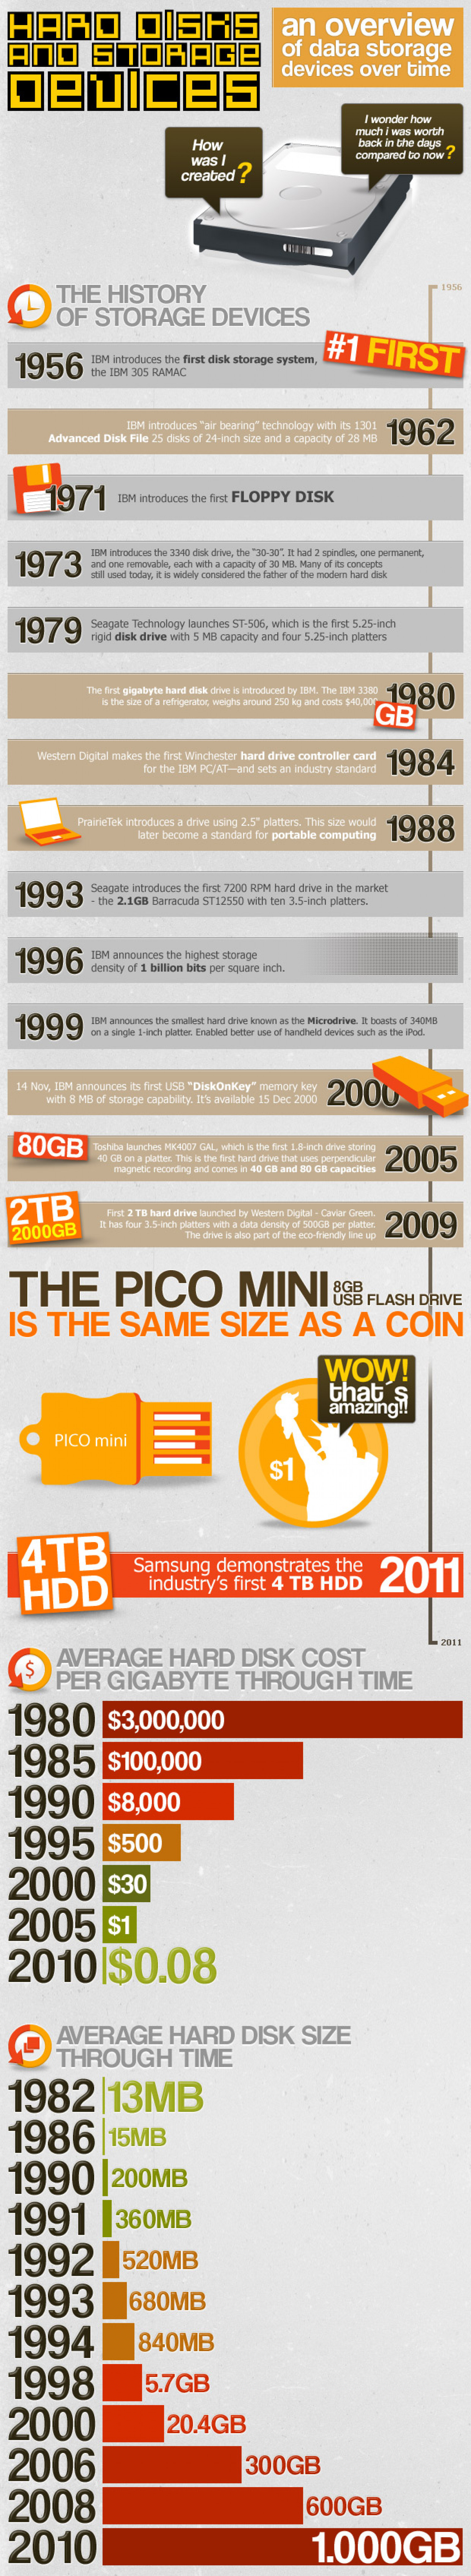 An Overview of Data Storage Devices Over Time  Infographic